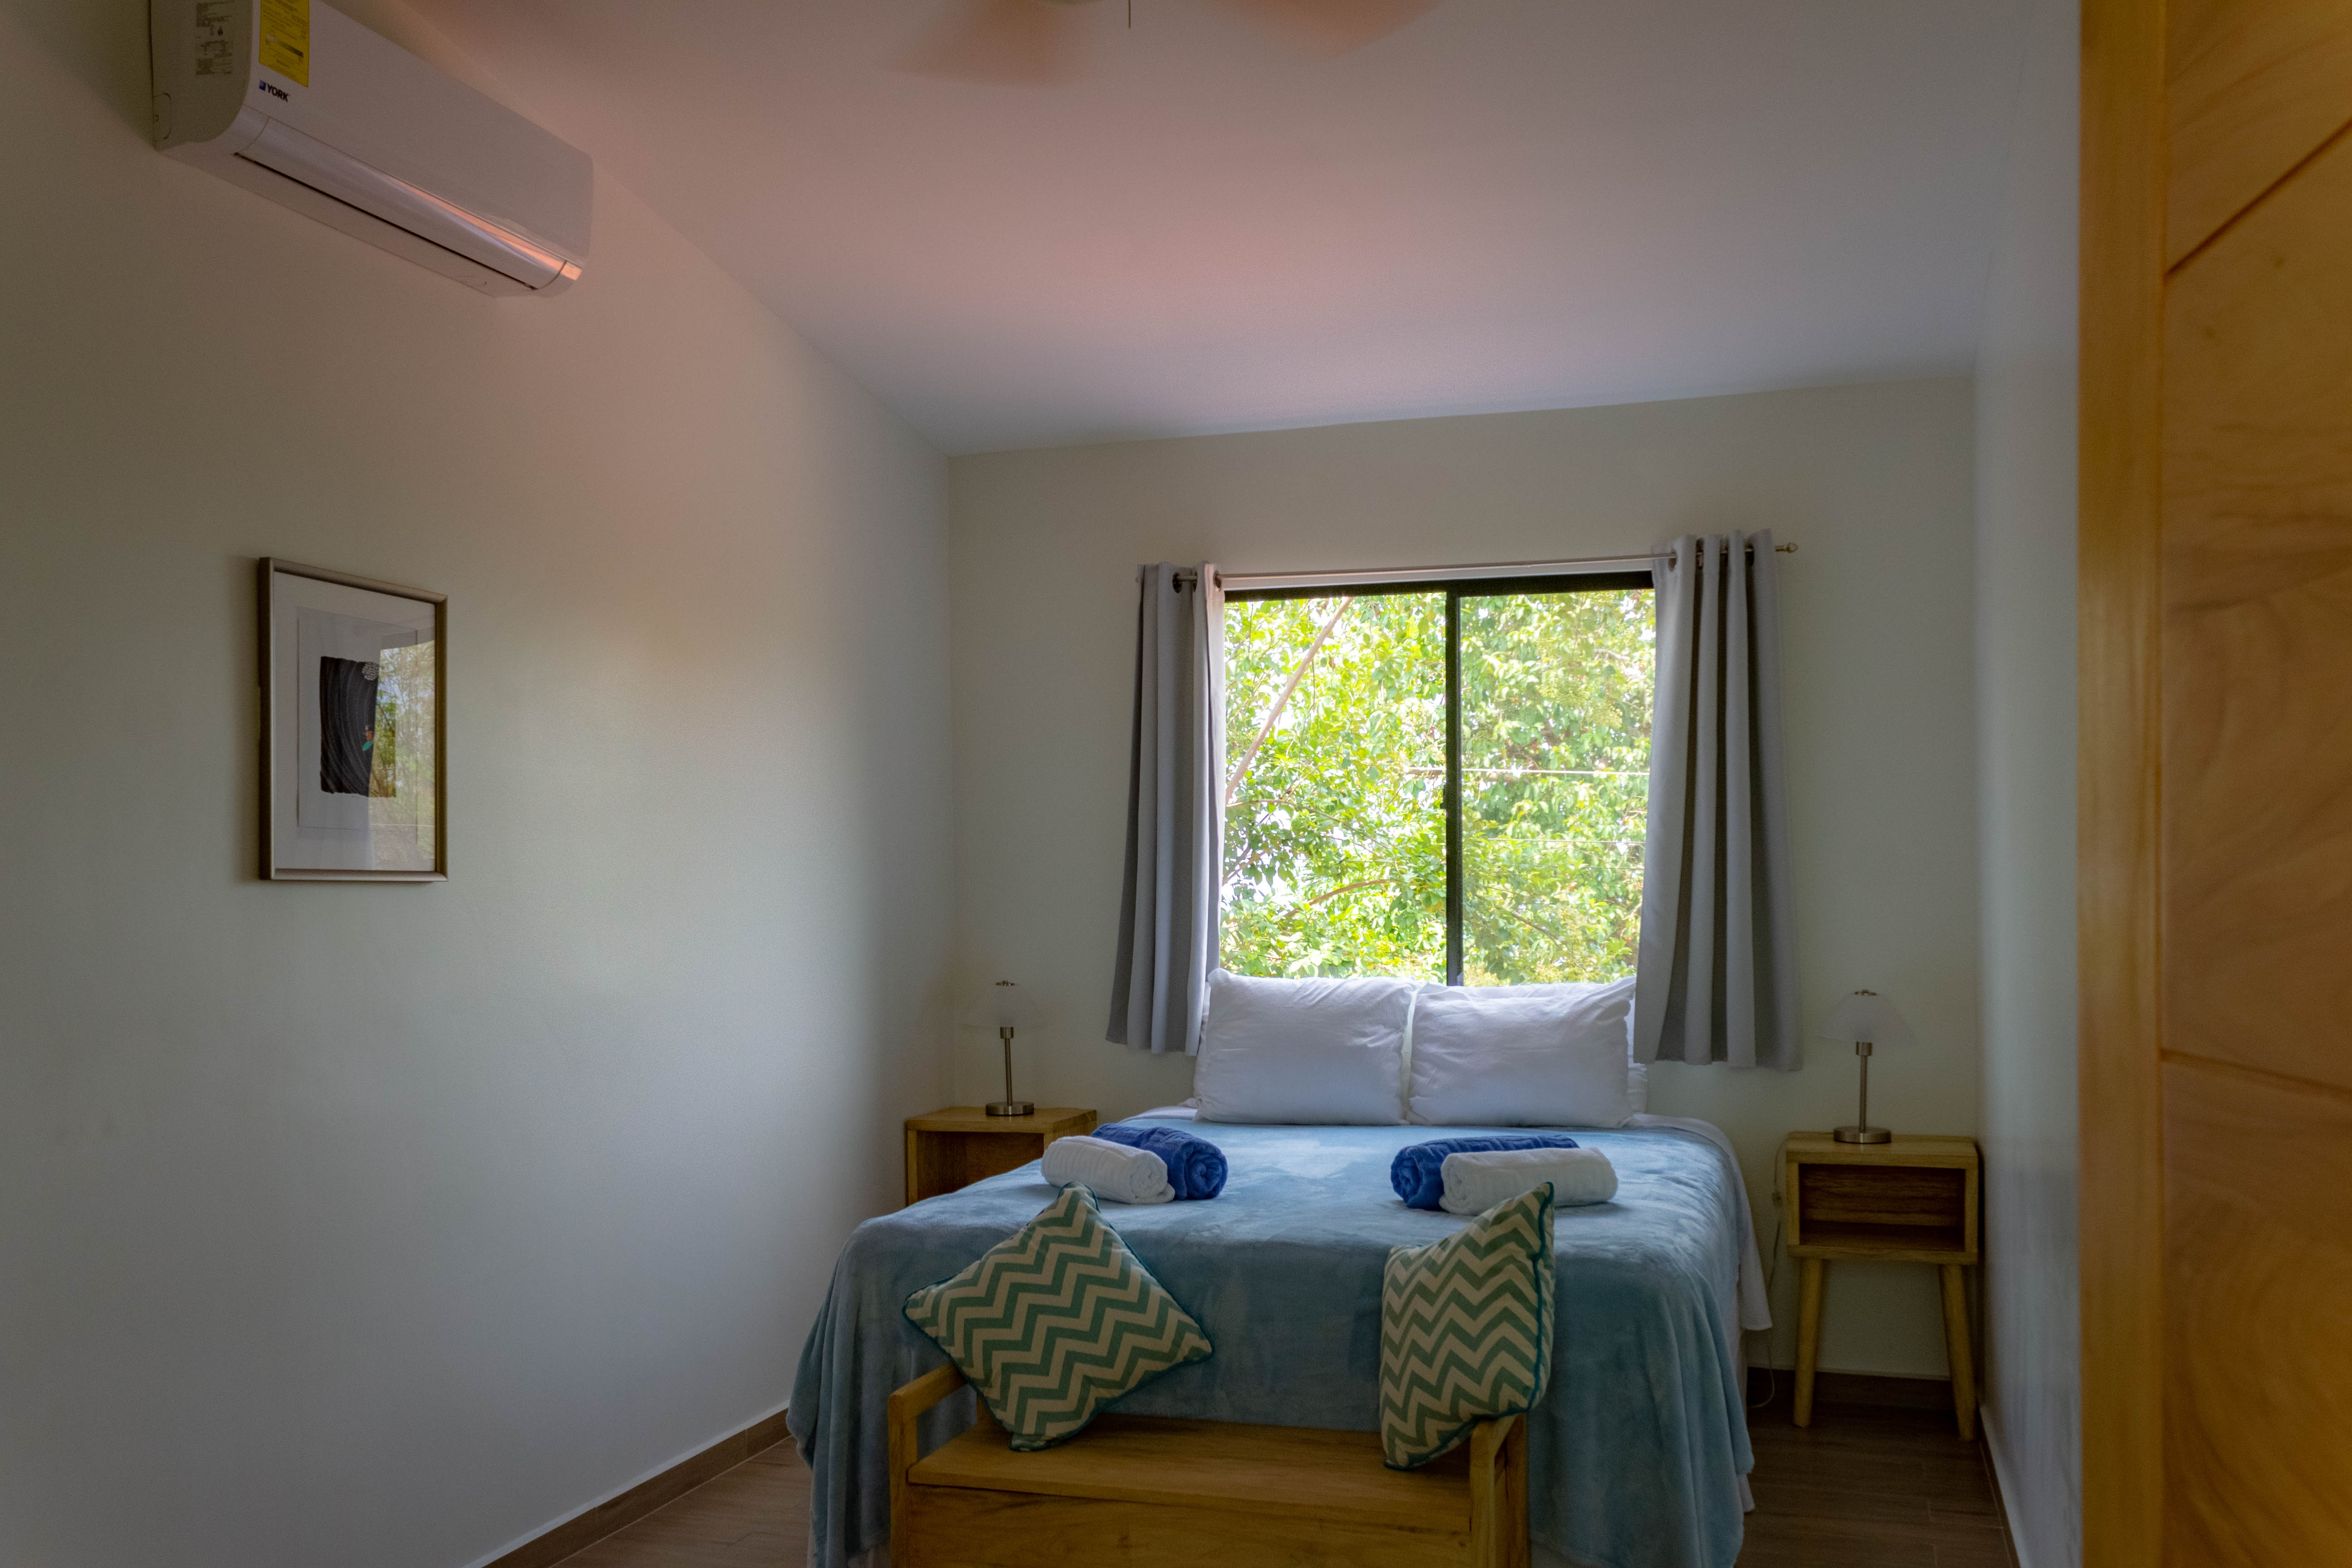 View of the second casita bedroom